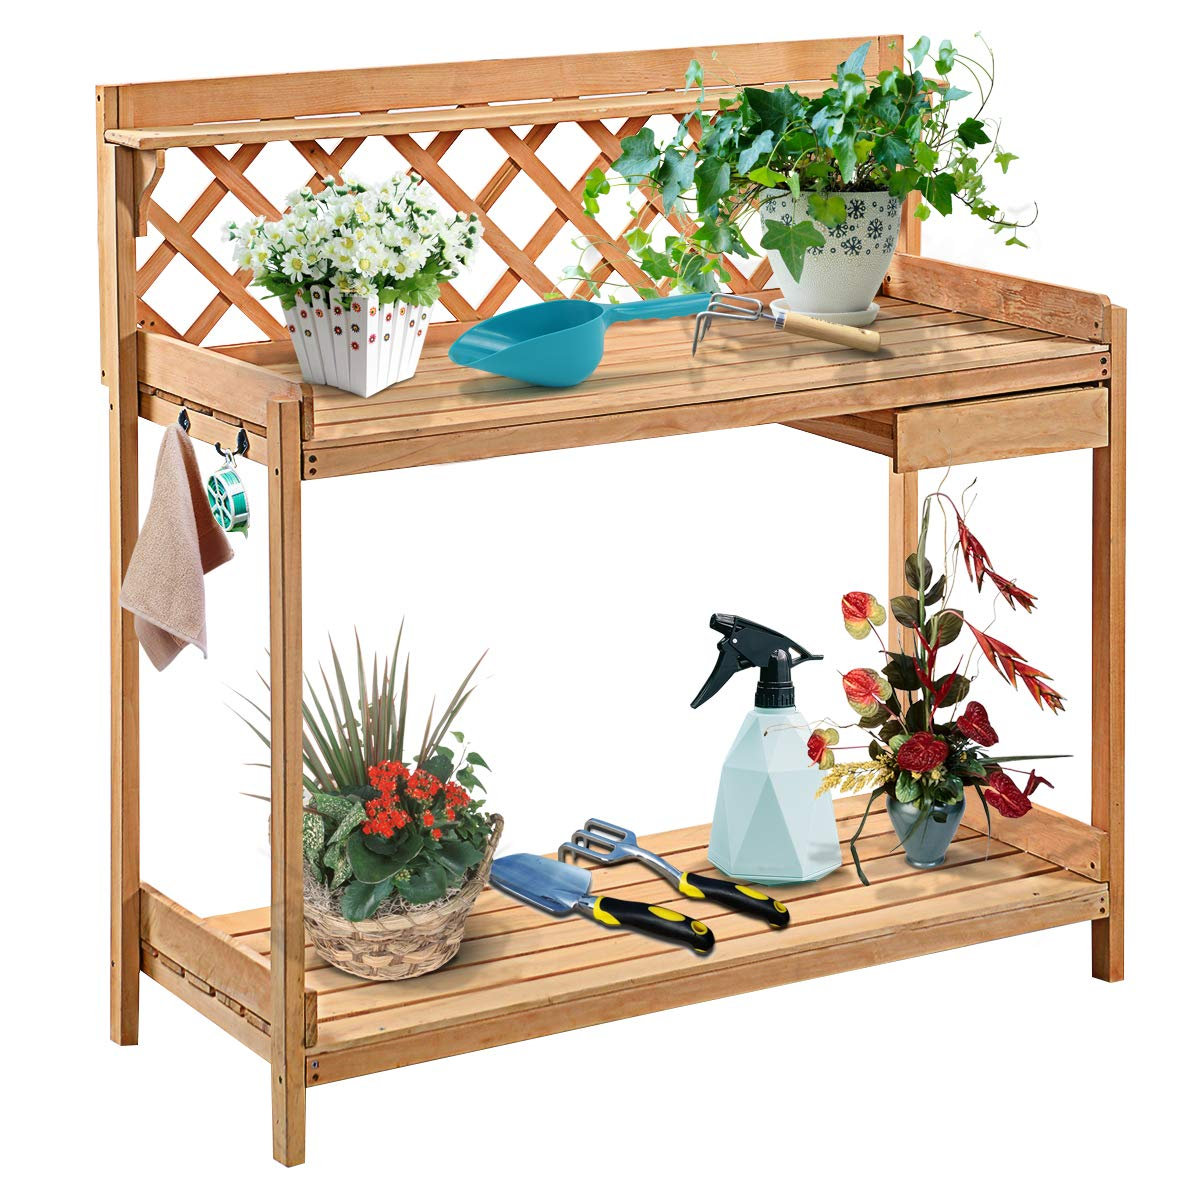 Giantex Potting Bench Garden Potting Benches Outdoor Planting and